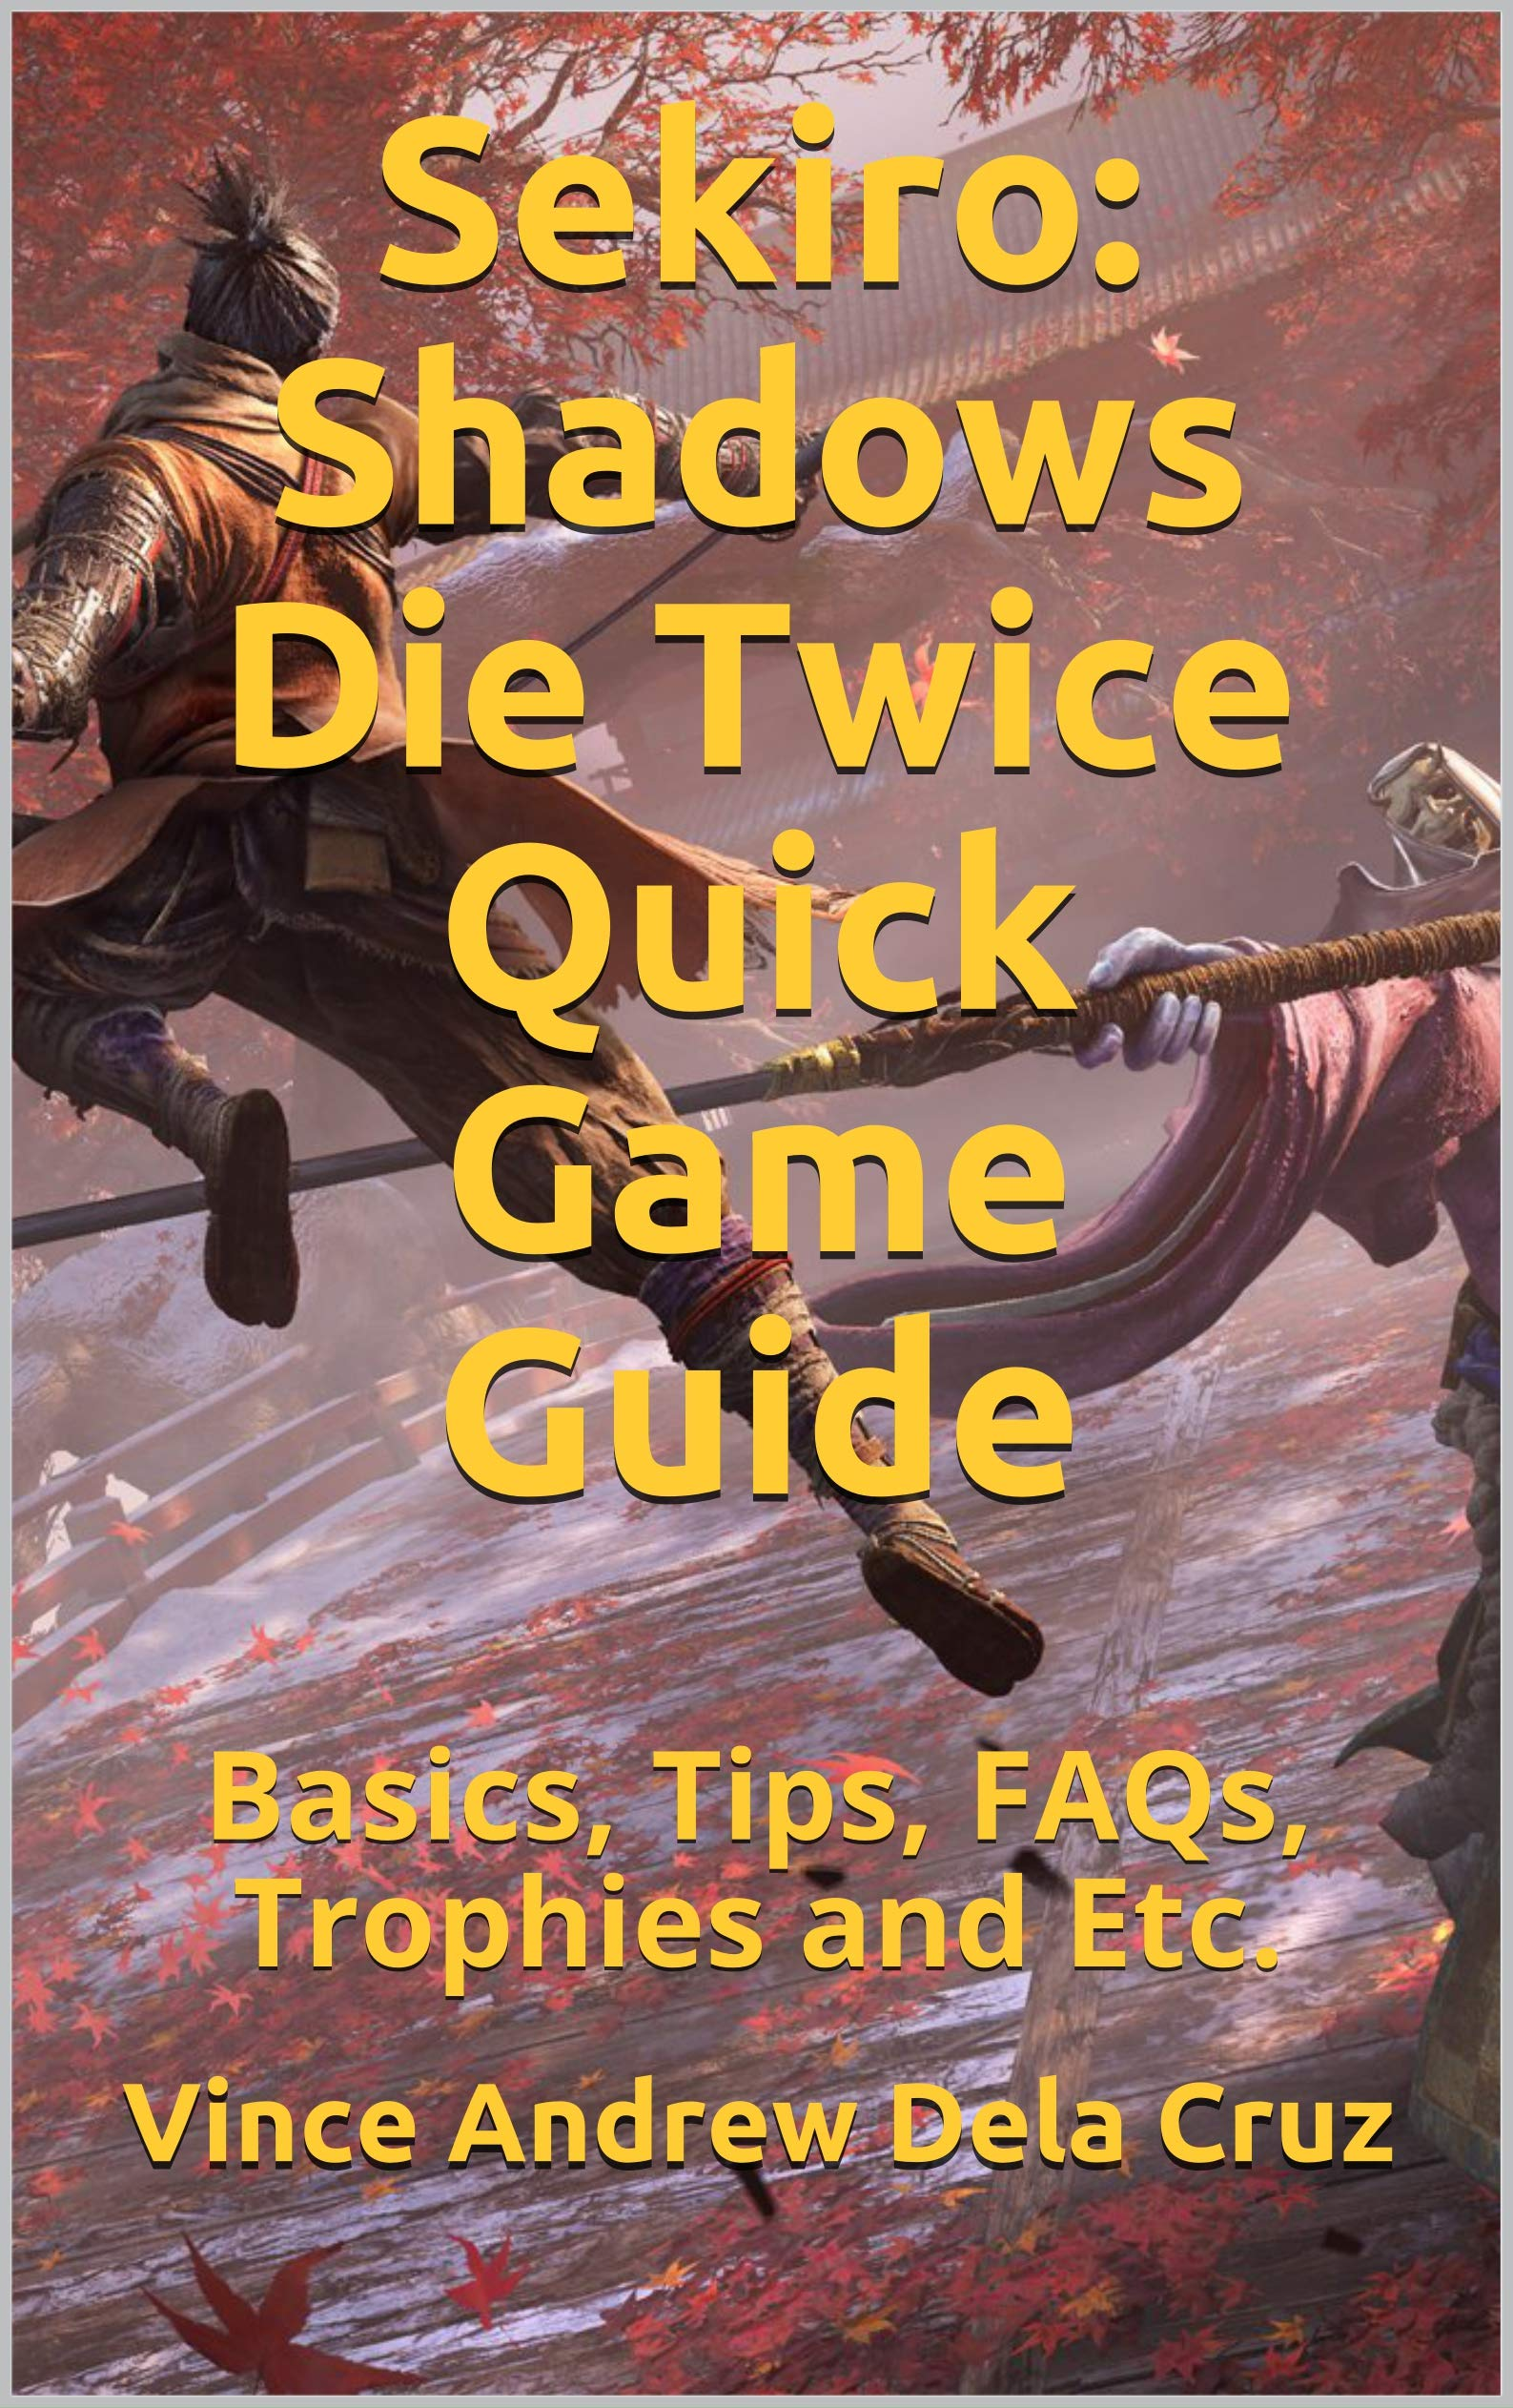 Sekiro: Shadows Die Twice Quick Game Guide: Basics, Tips, FAQs, Trophies and Etc.